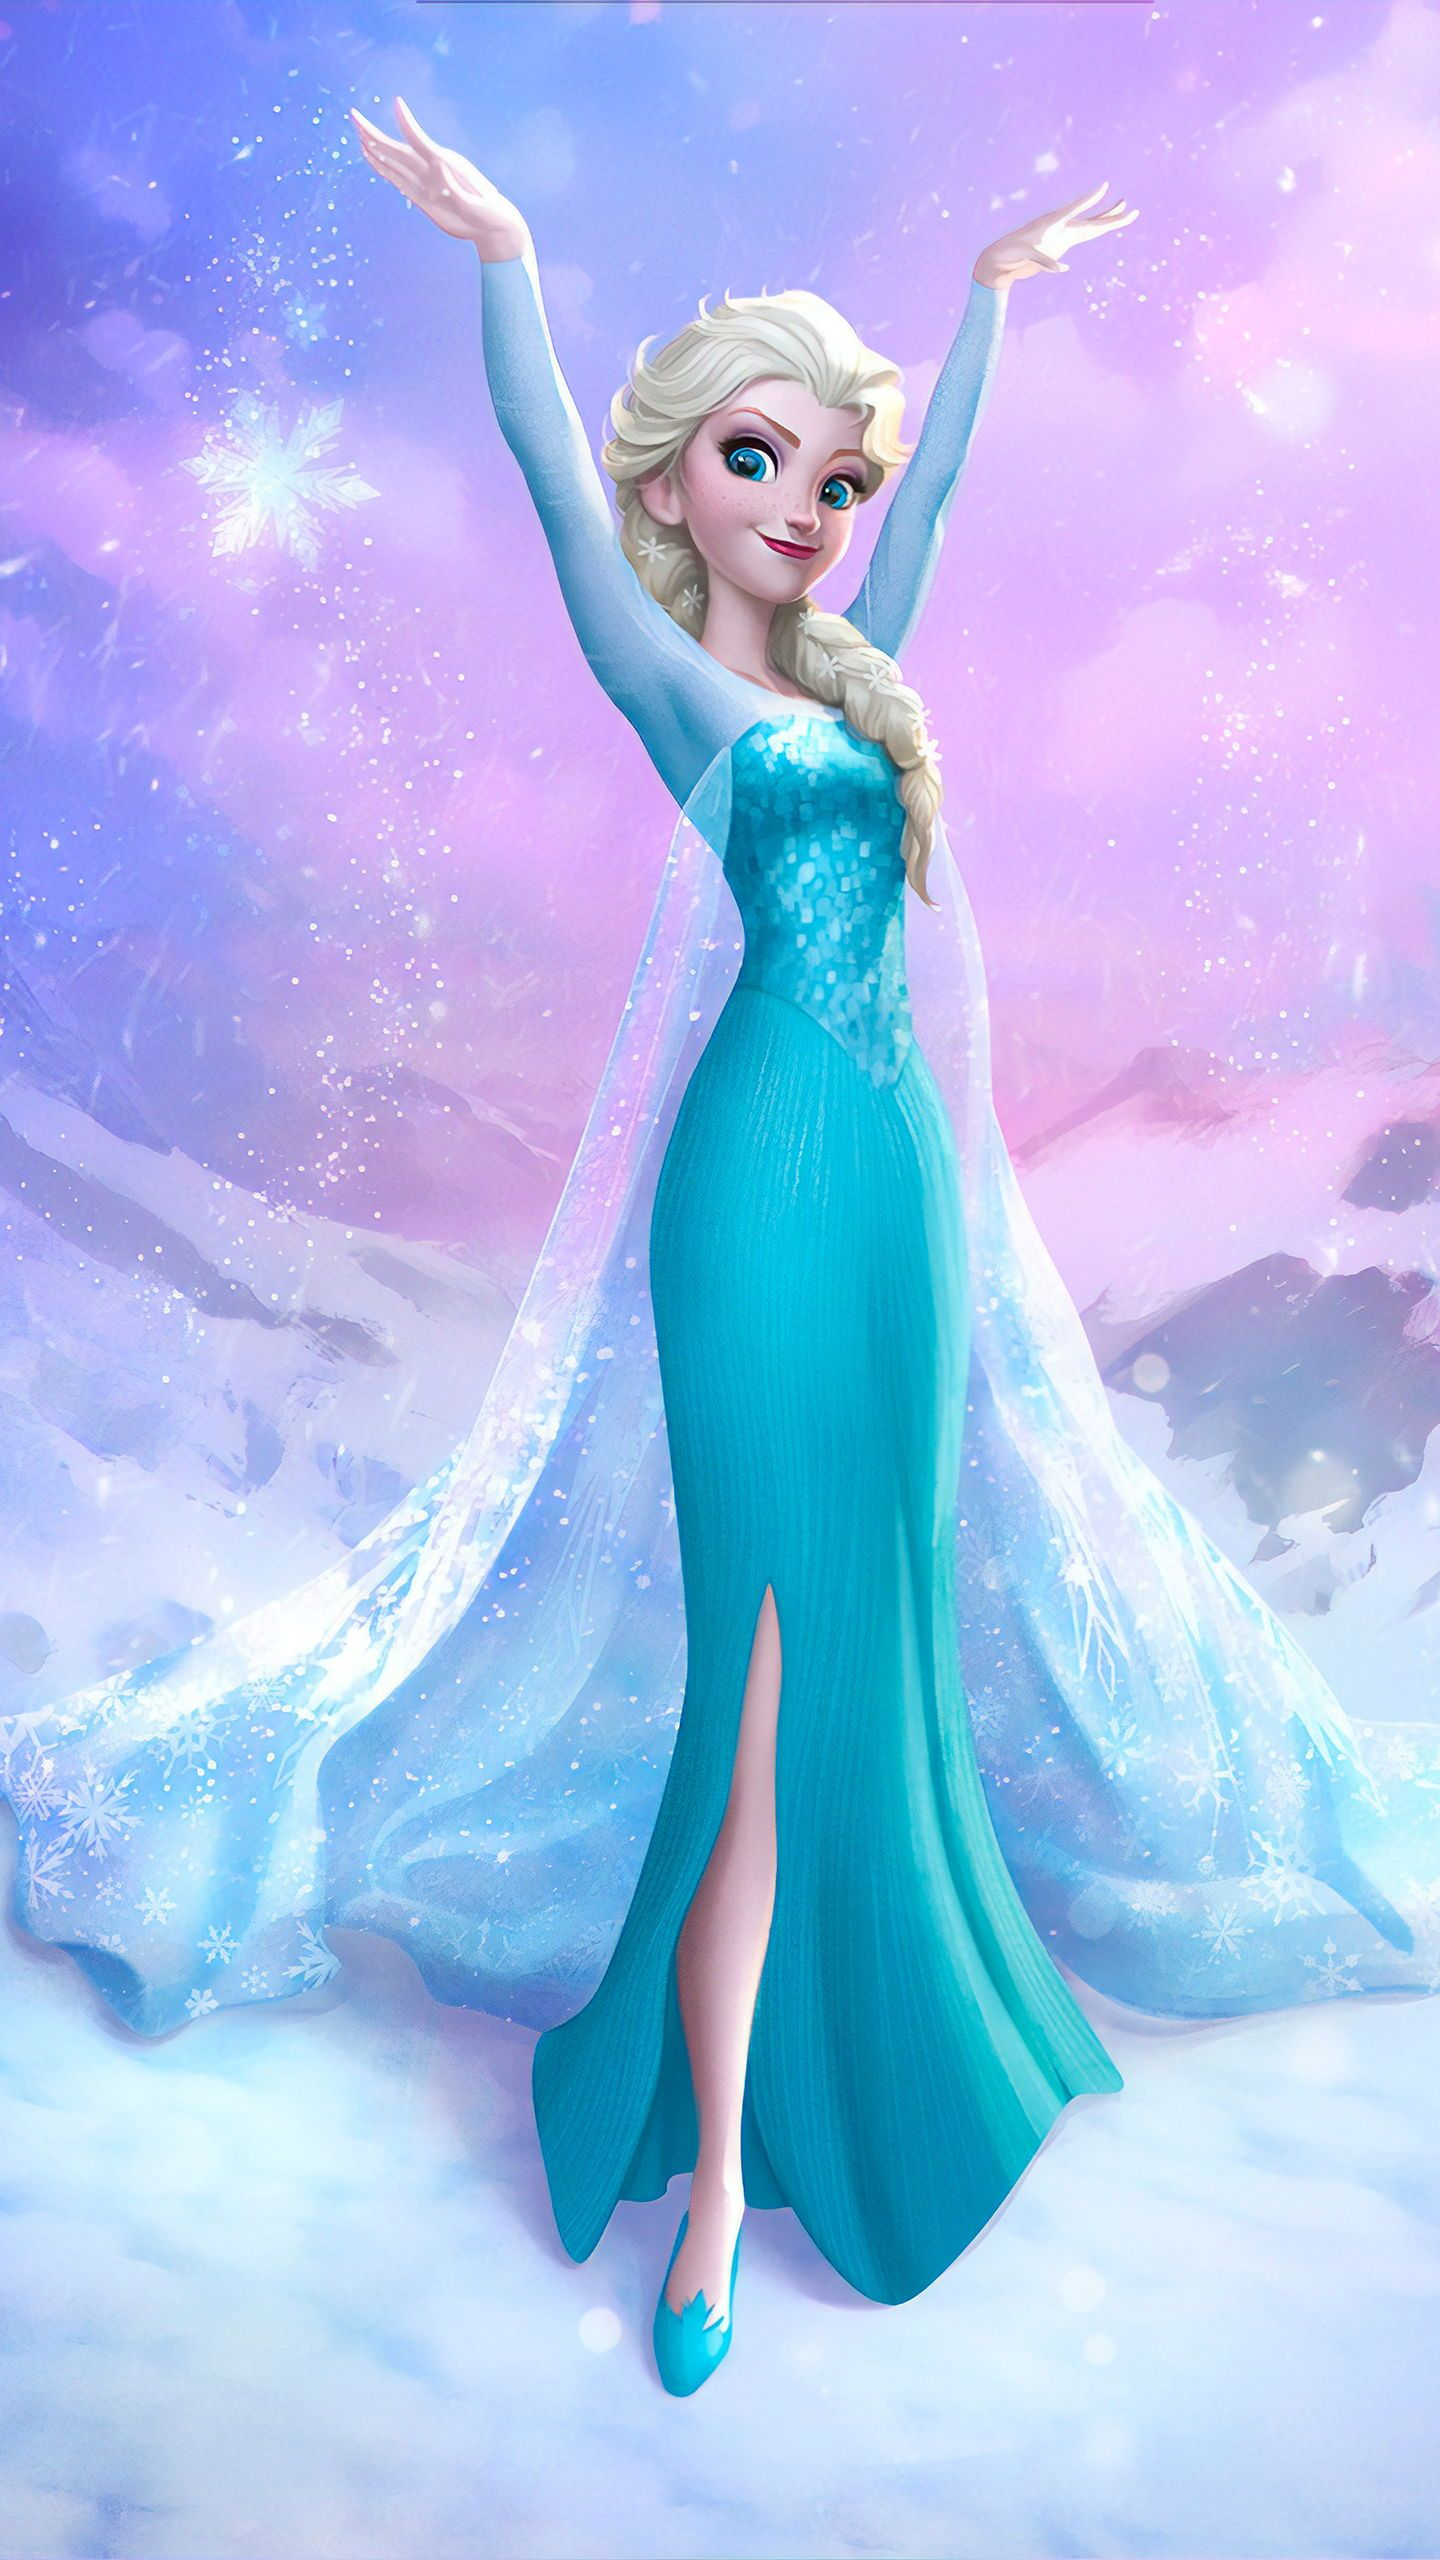 Frozen 2 Trailer Is Out & The Past Is Not What It Seems